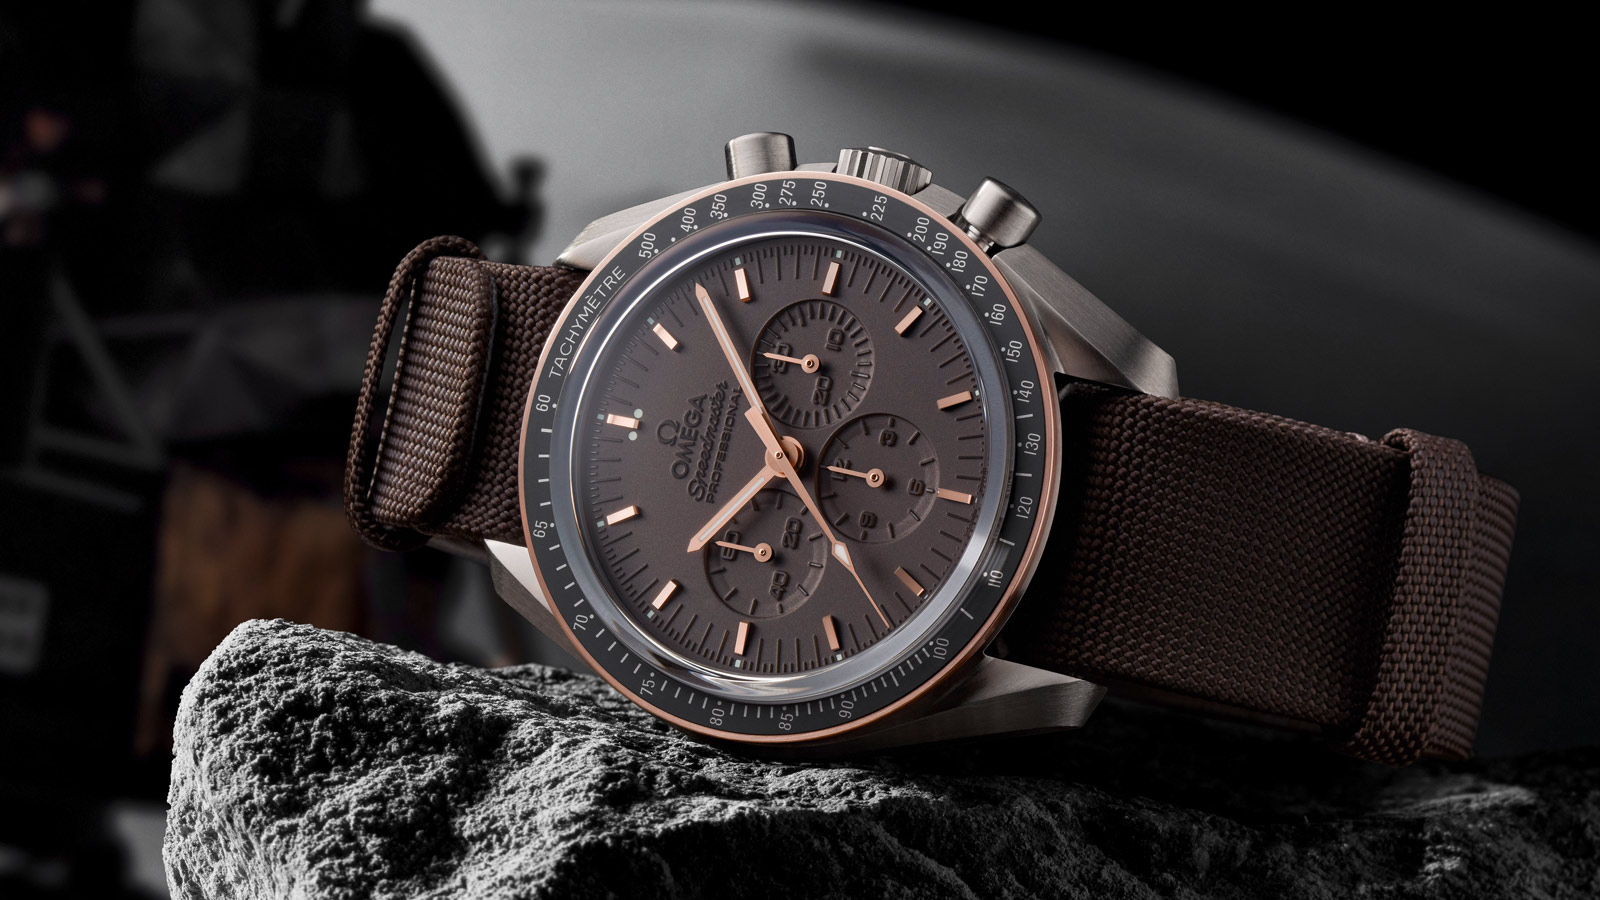 Speedmaster Moonwatch Moonwatch Series Limitadas Aniversario - 311.62.42.30.06.001 - Vista 4